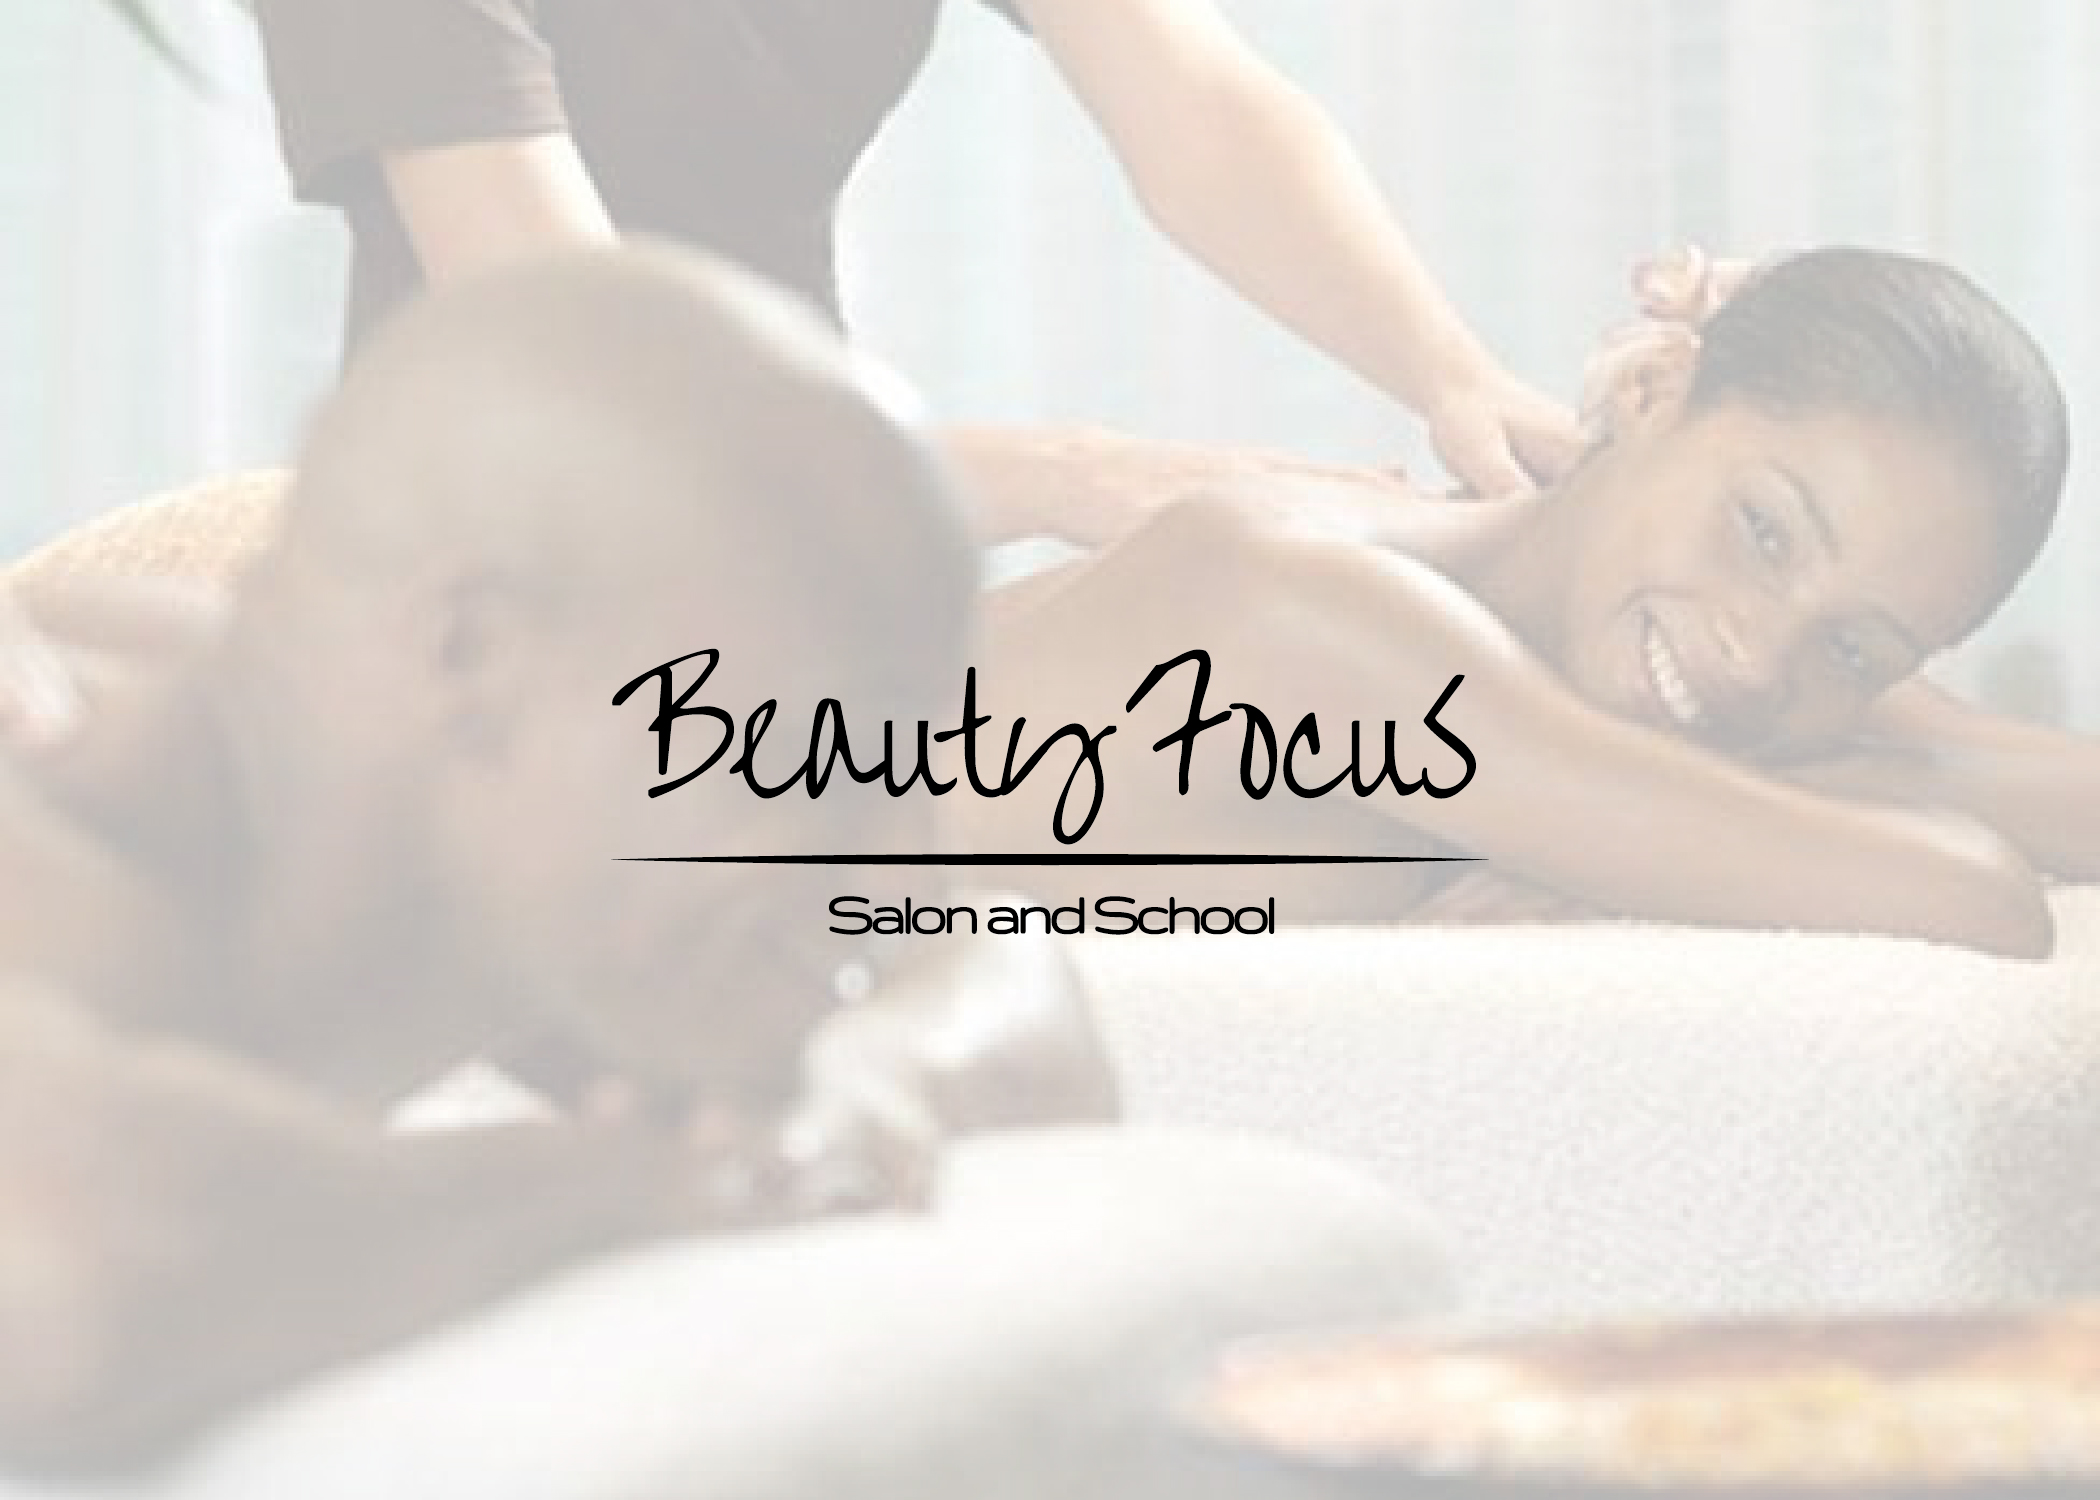 Beauty Focus Salon & School Booklet Cover Design